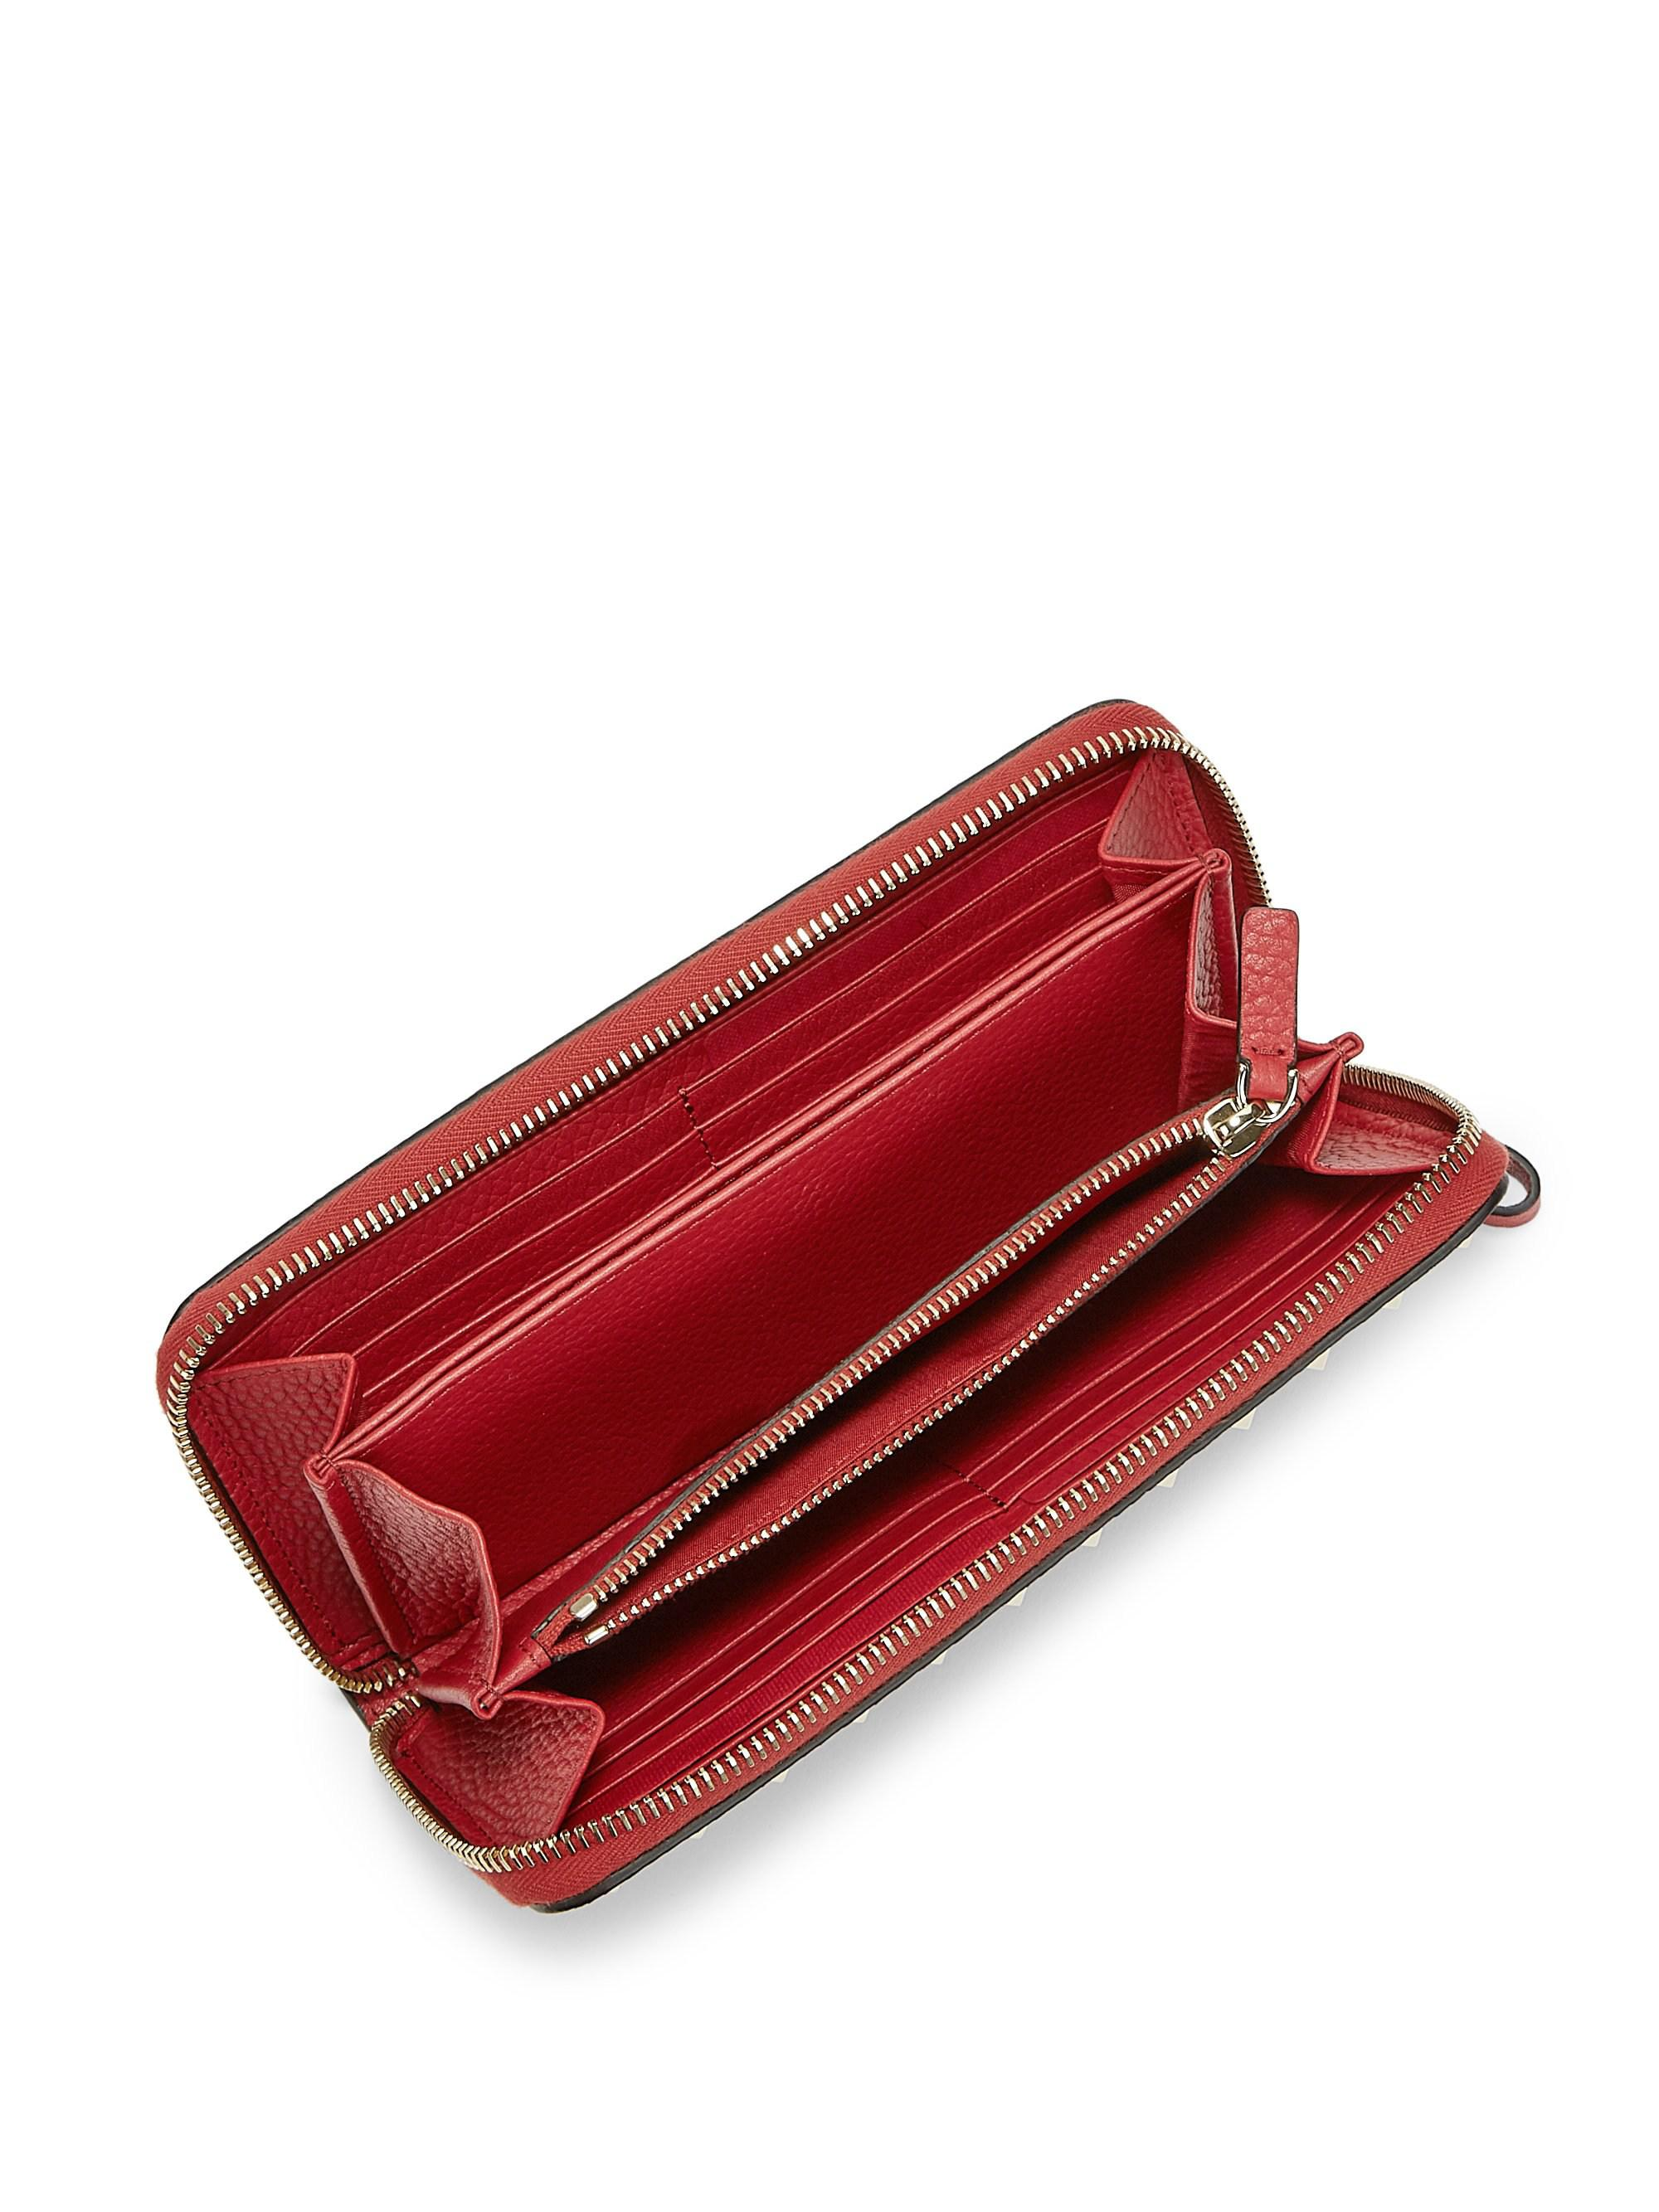 9b0d69c14e6 Valentino - Red Rockstud Leather Zip Around Continental Wallet - Lyst. View  fullscreen